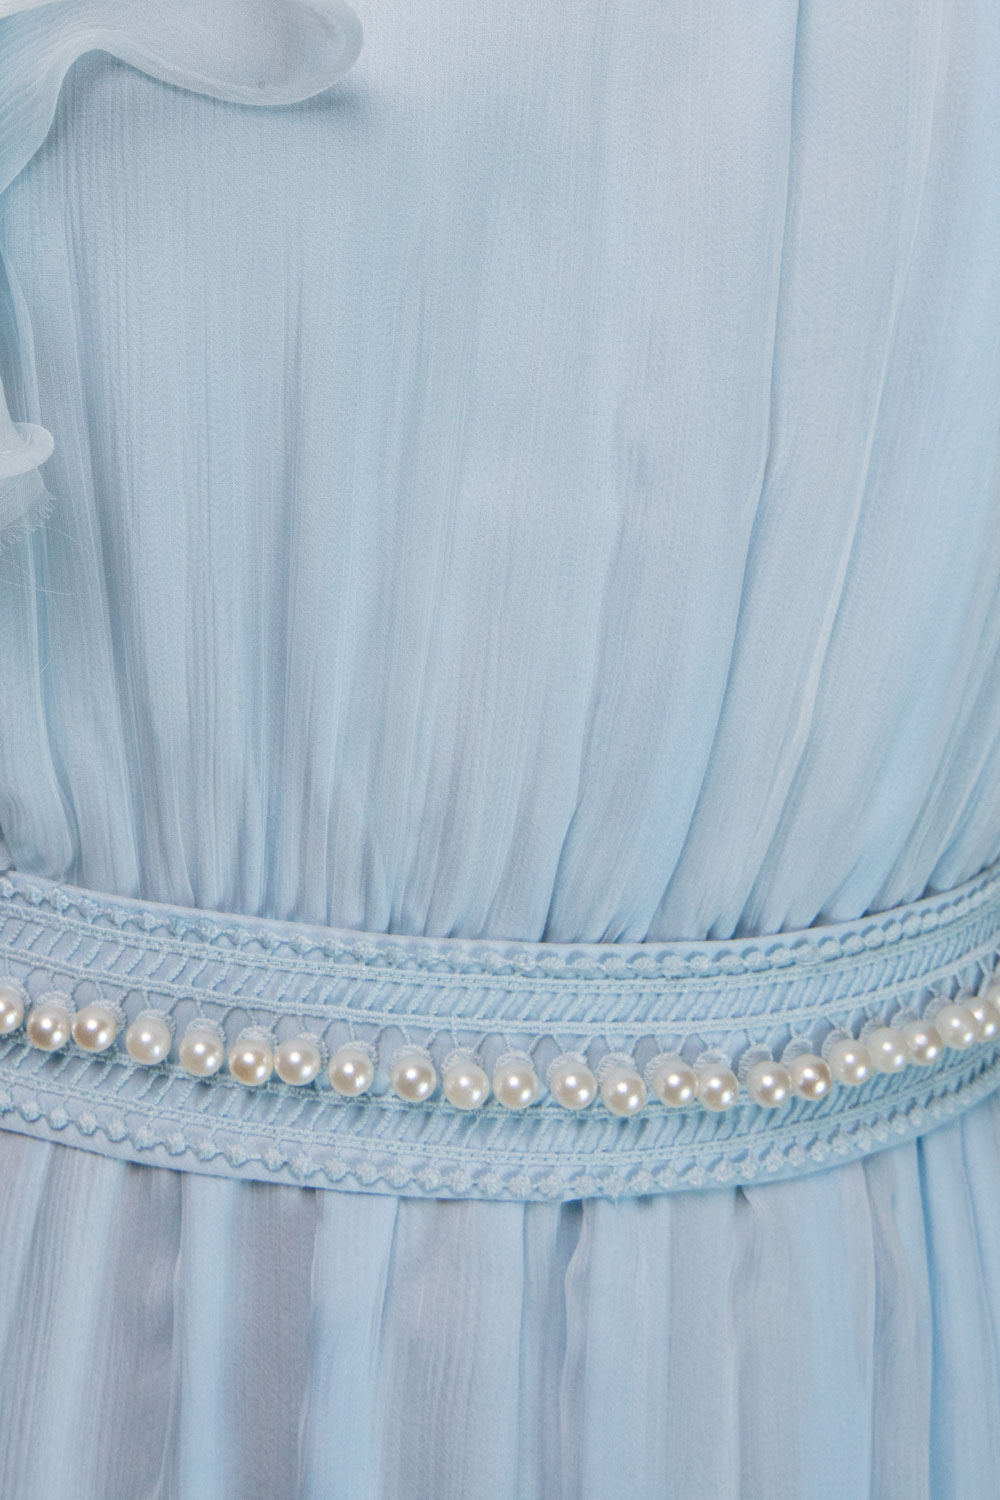 One-shouldered ice-blue gown with ruffled collar and ripple sleeve, pearl studded waistband